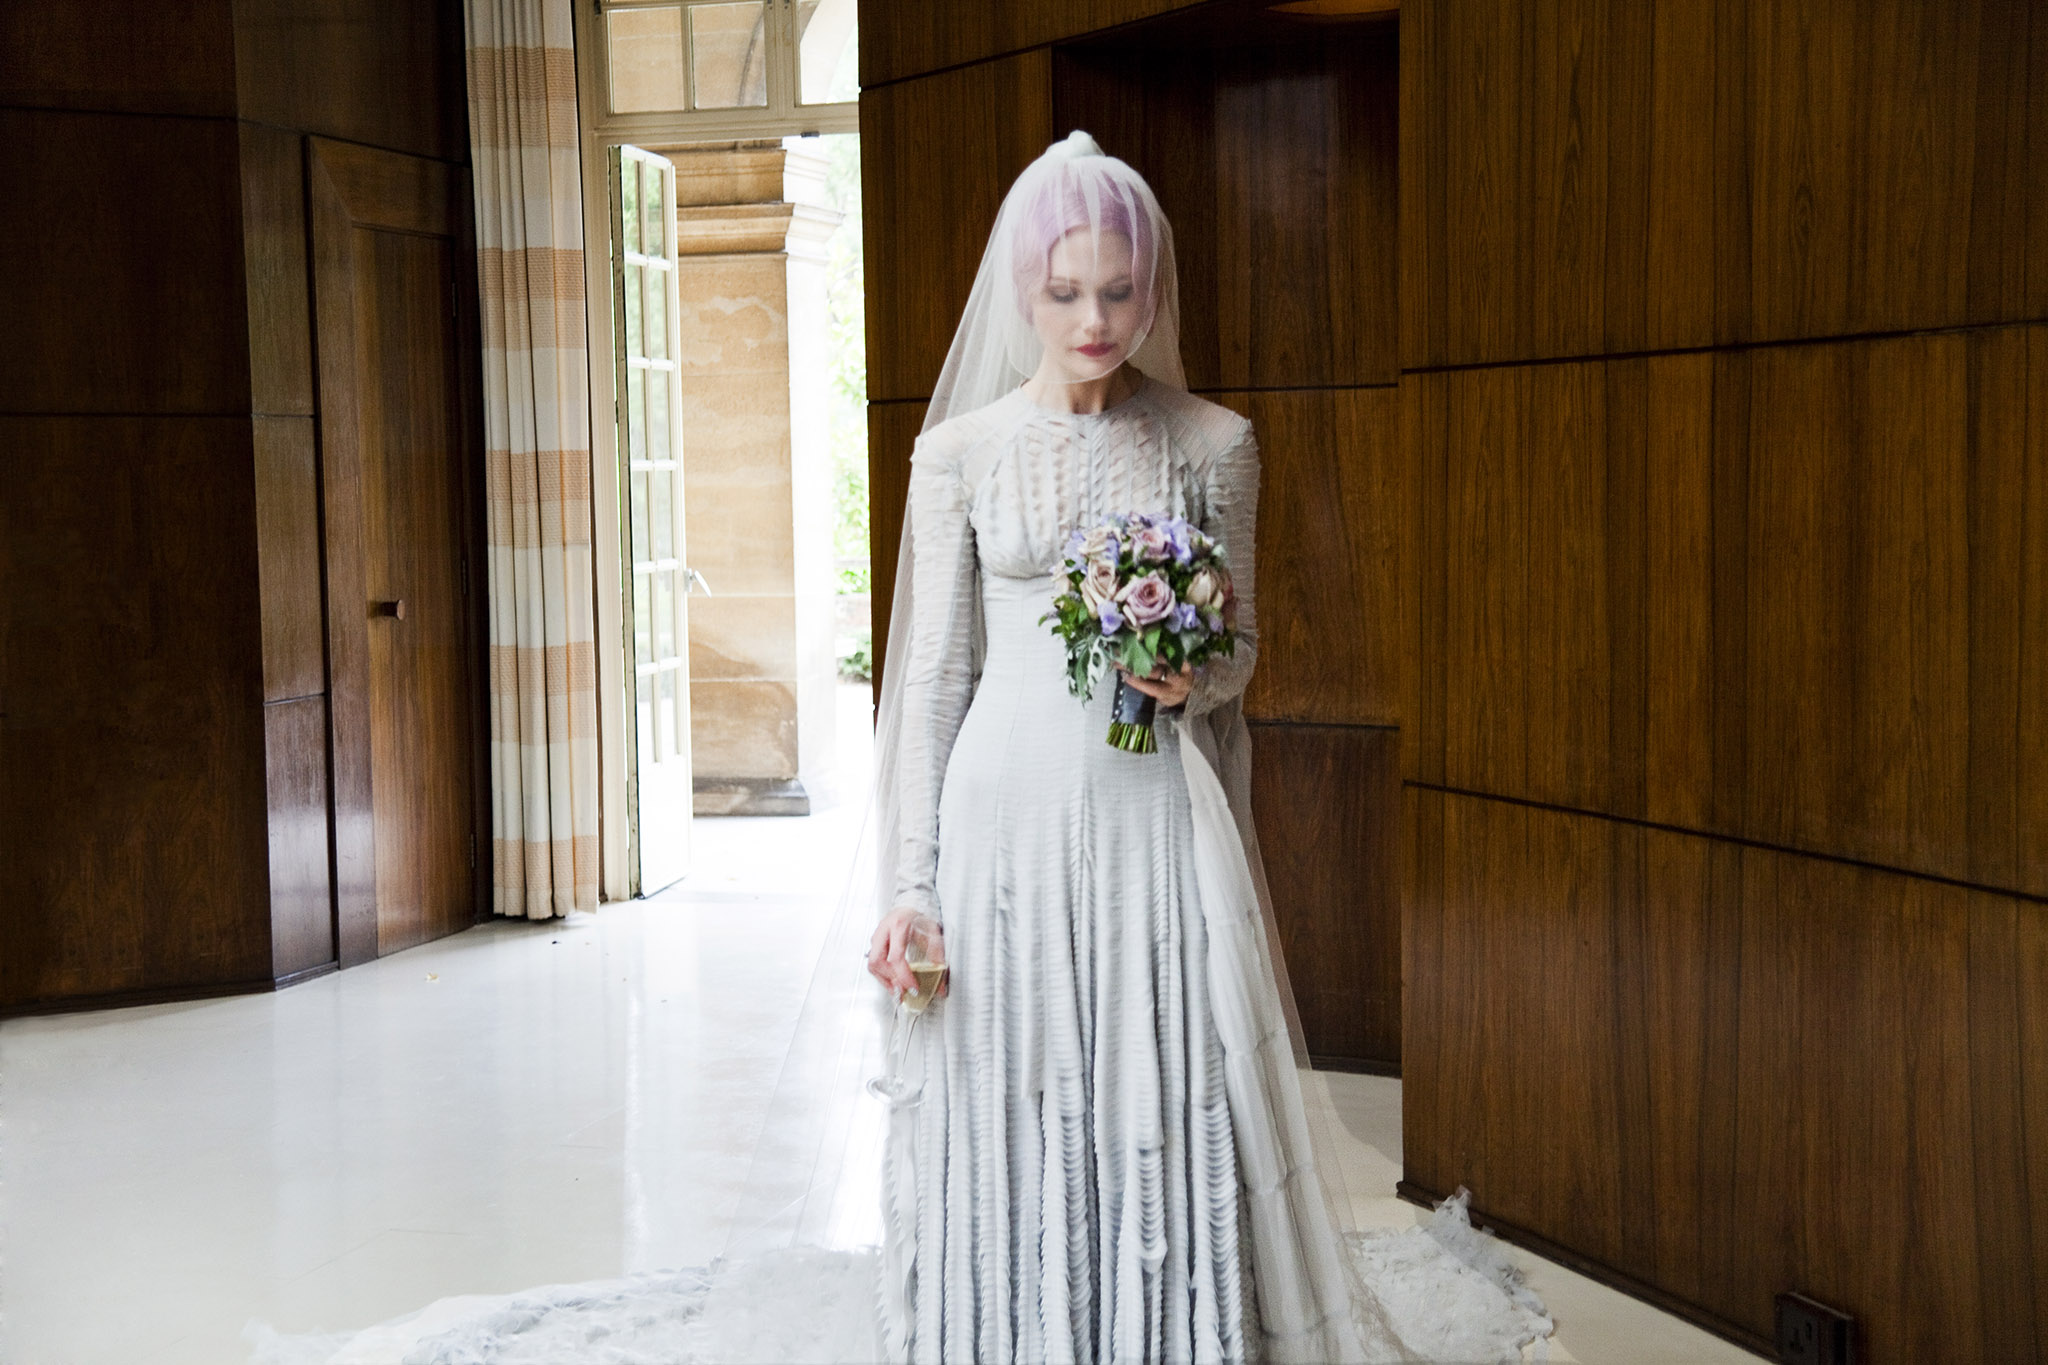 Pale_grey_slashed_chiffon_wedding_dress__designed_by_Gareth_Pugh_and_veil_by_Stephen_Jones_2011._Courtesy_of_Katie_Shillingford._Photo__Amy_Gwatkin